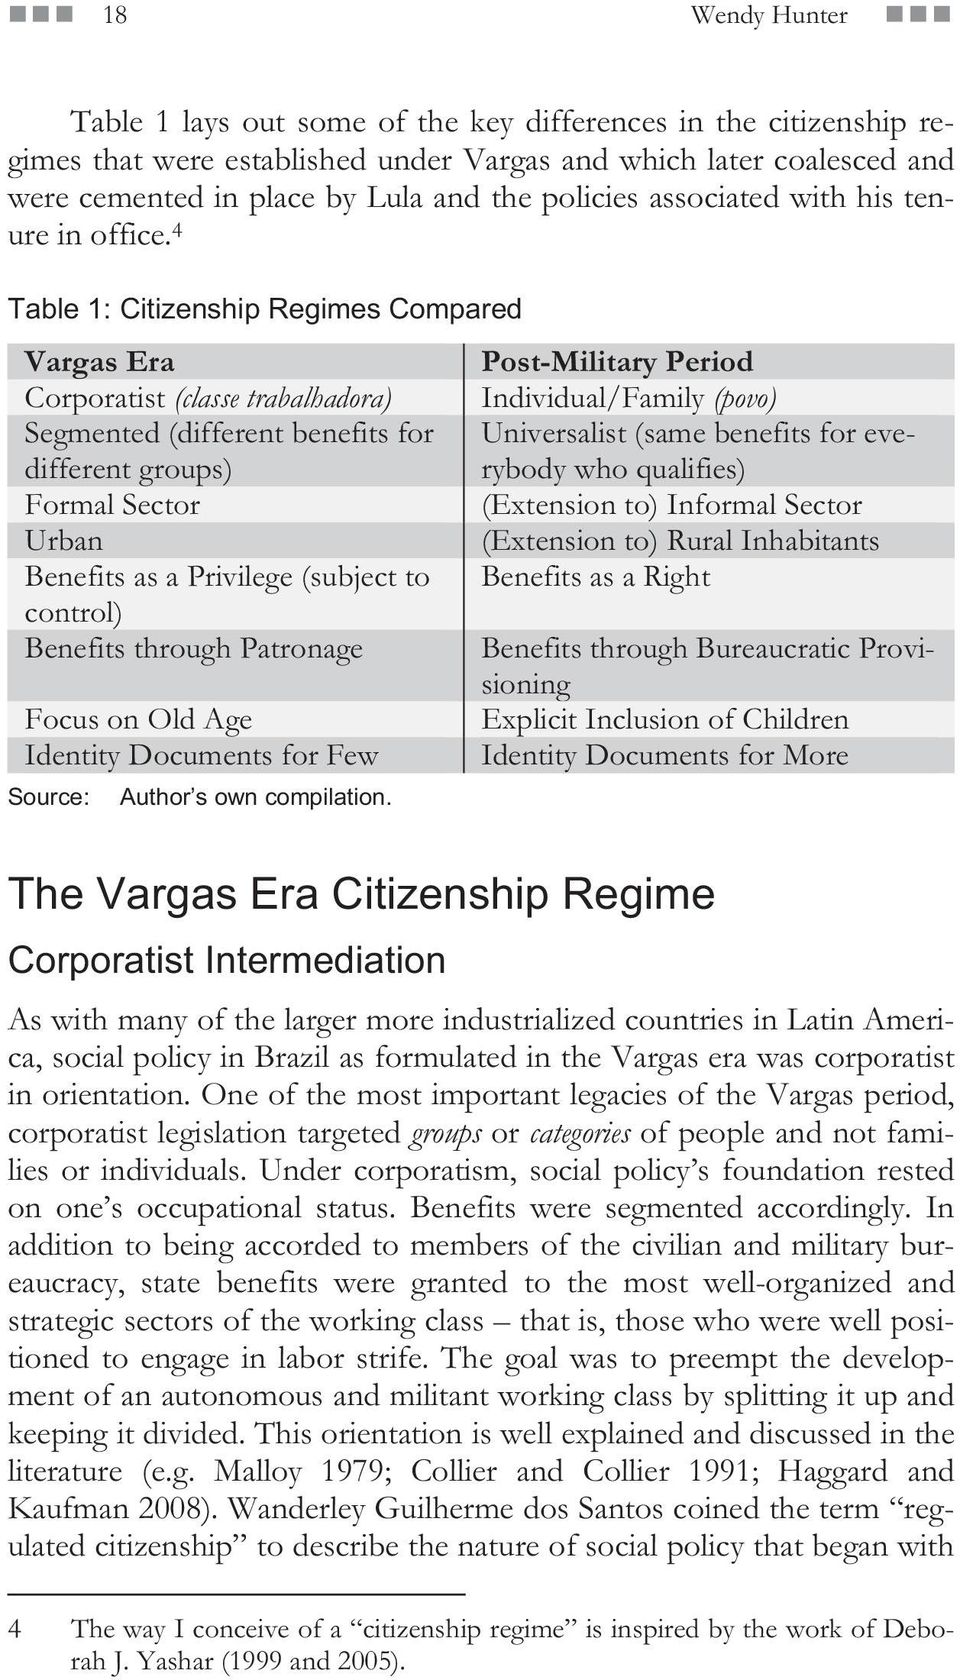 4 Table 1: Citizenship Regimes Compared Vargas Era Post-Military Period Corporatist (classe trabalhadora) Individual/Family (povo) Segmented (different benefits for different groups) Universalist